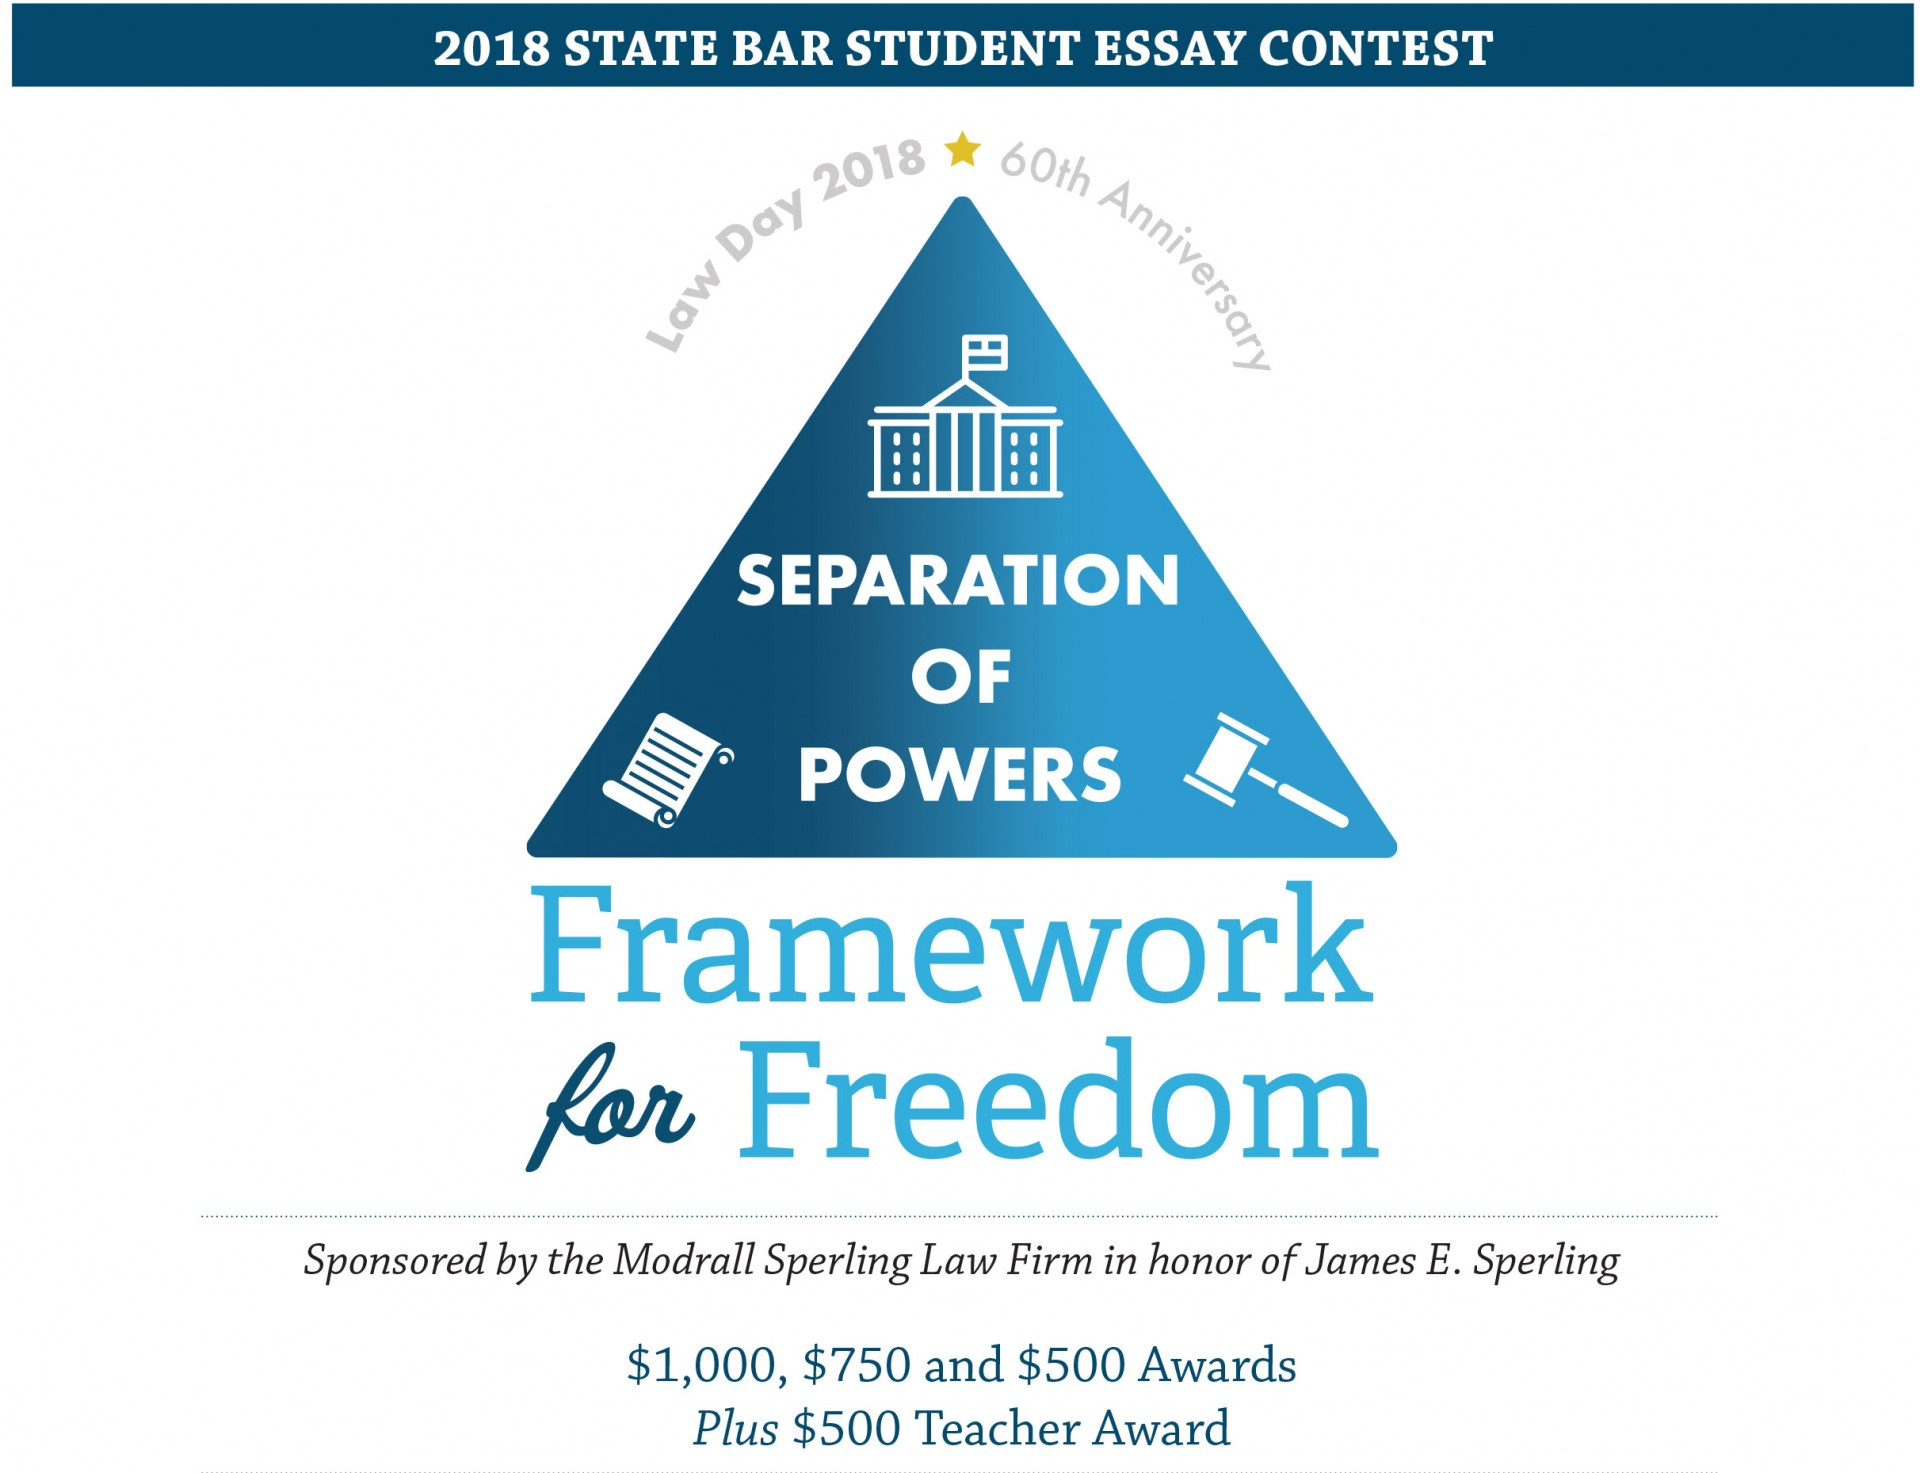 011 Separationofpowers Essay Example High School Fascinating Contests Contest Winners 2019 For Scholarships 1920